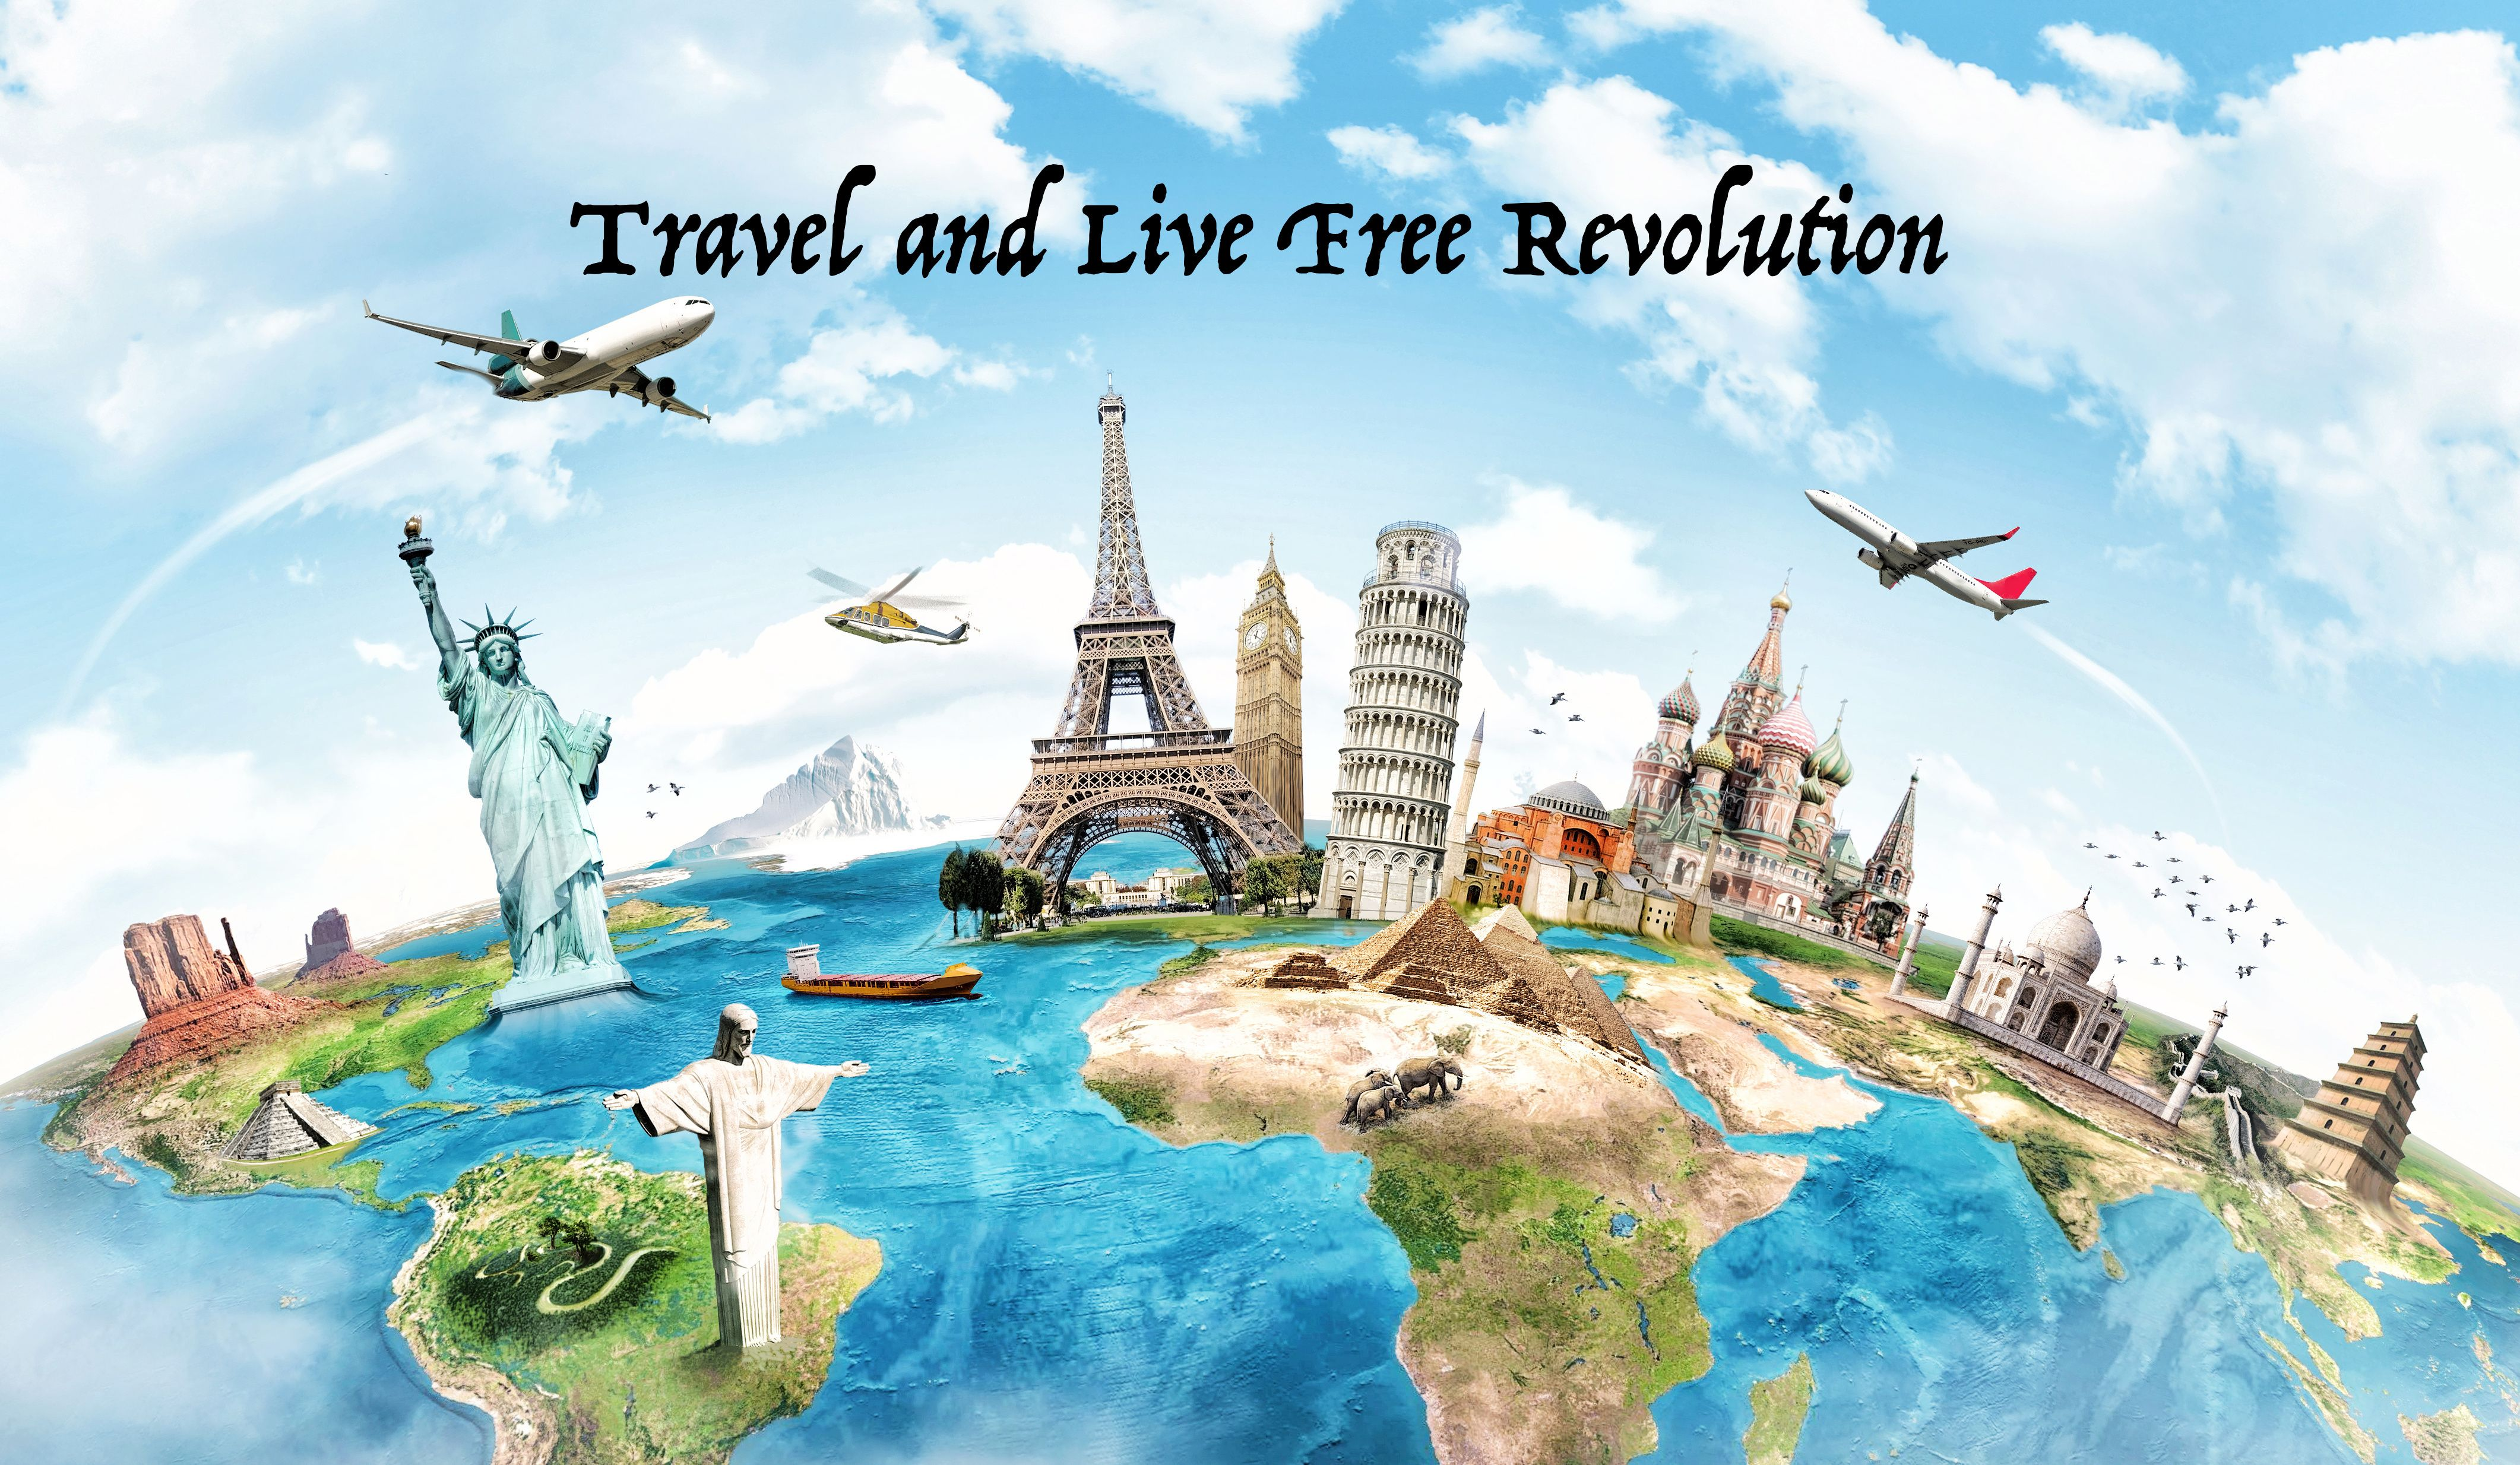 Travel and Live Free Revolution